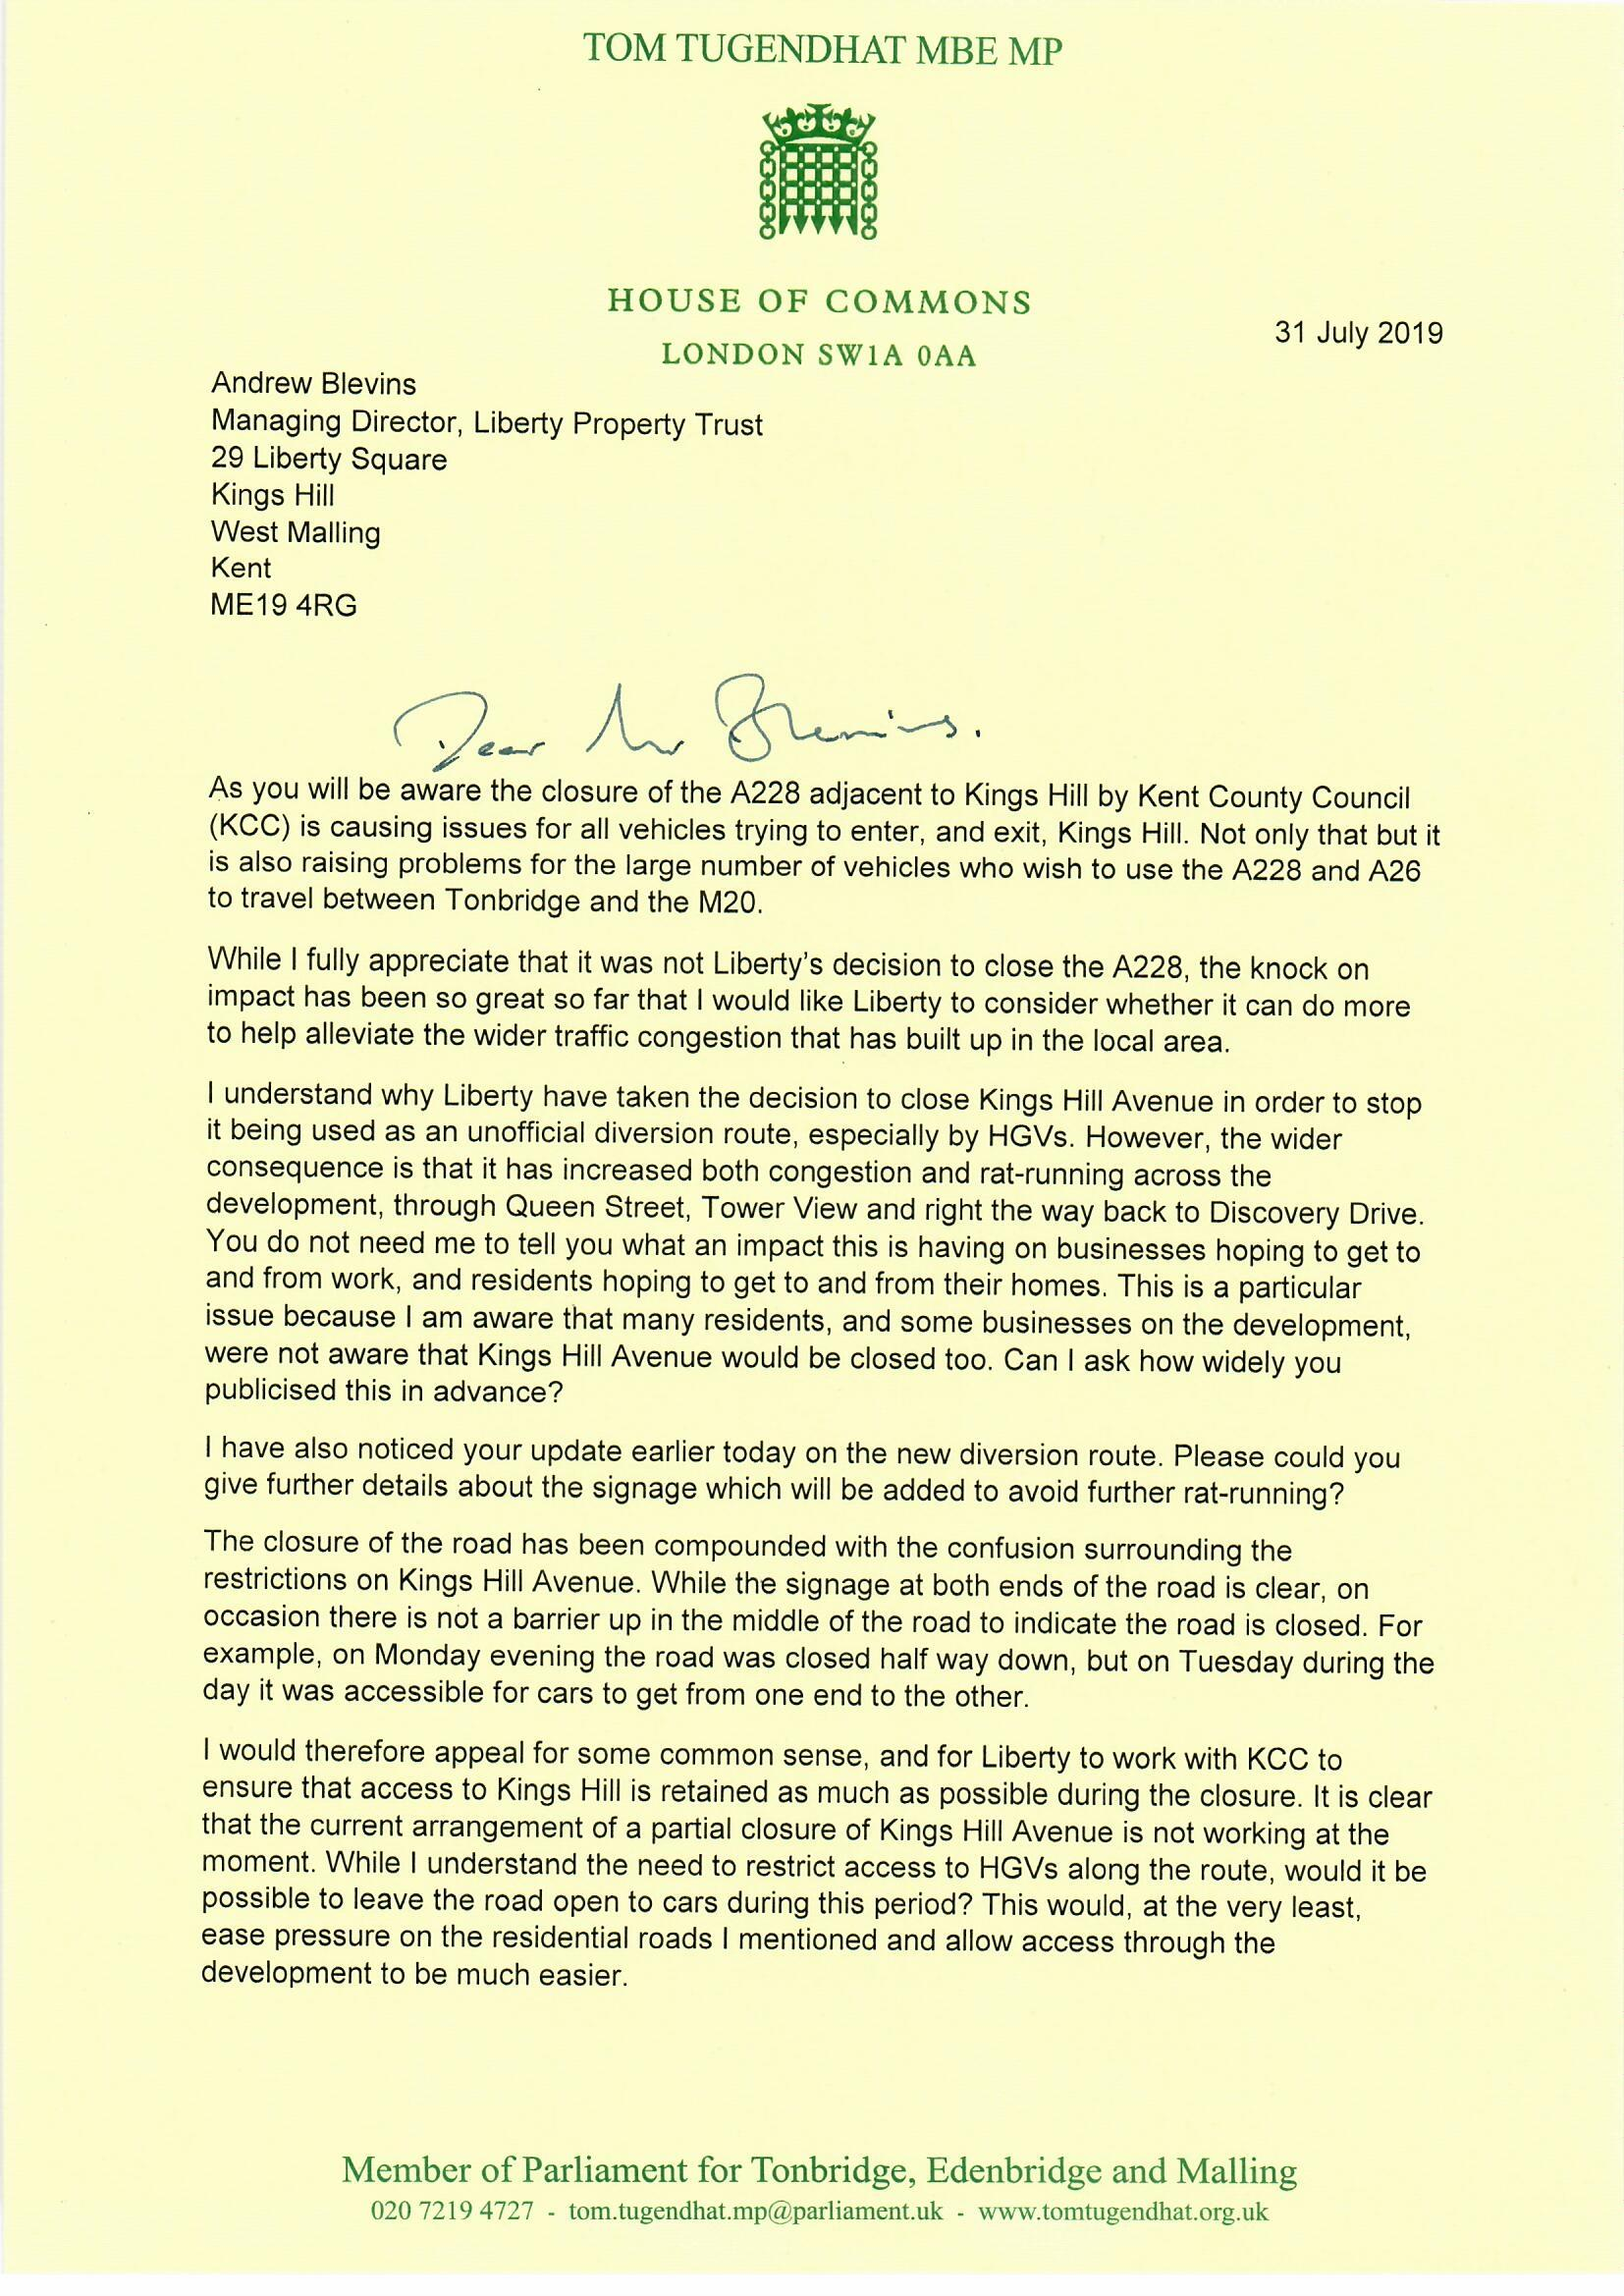 20190731 - Tom Tugendhat to Liberty Property Trust, A228 closure0001.jpg